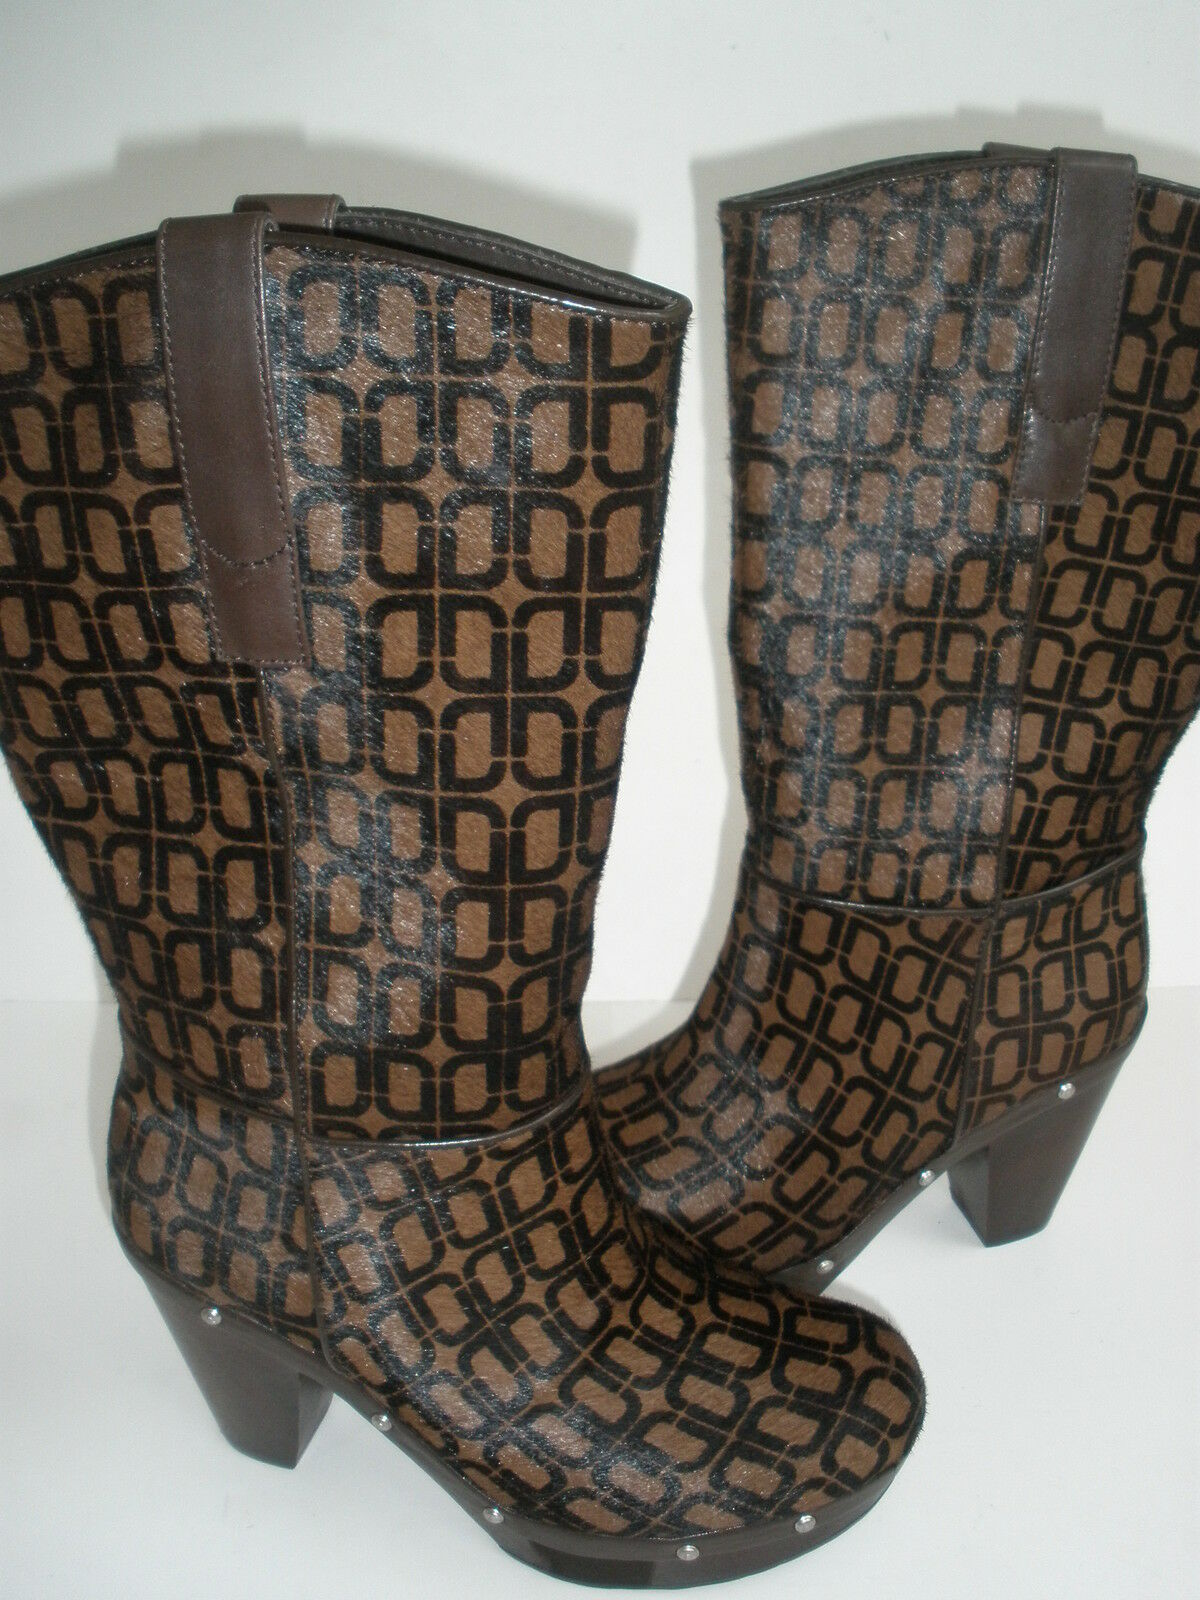 ROCKPORT - ADPRENE by ADIDAS COWSKIN bottes US 6 EUR 36 NEW RARE  99